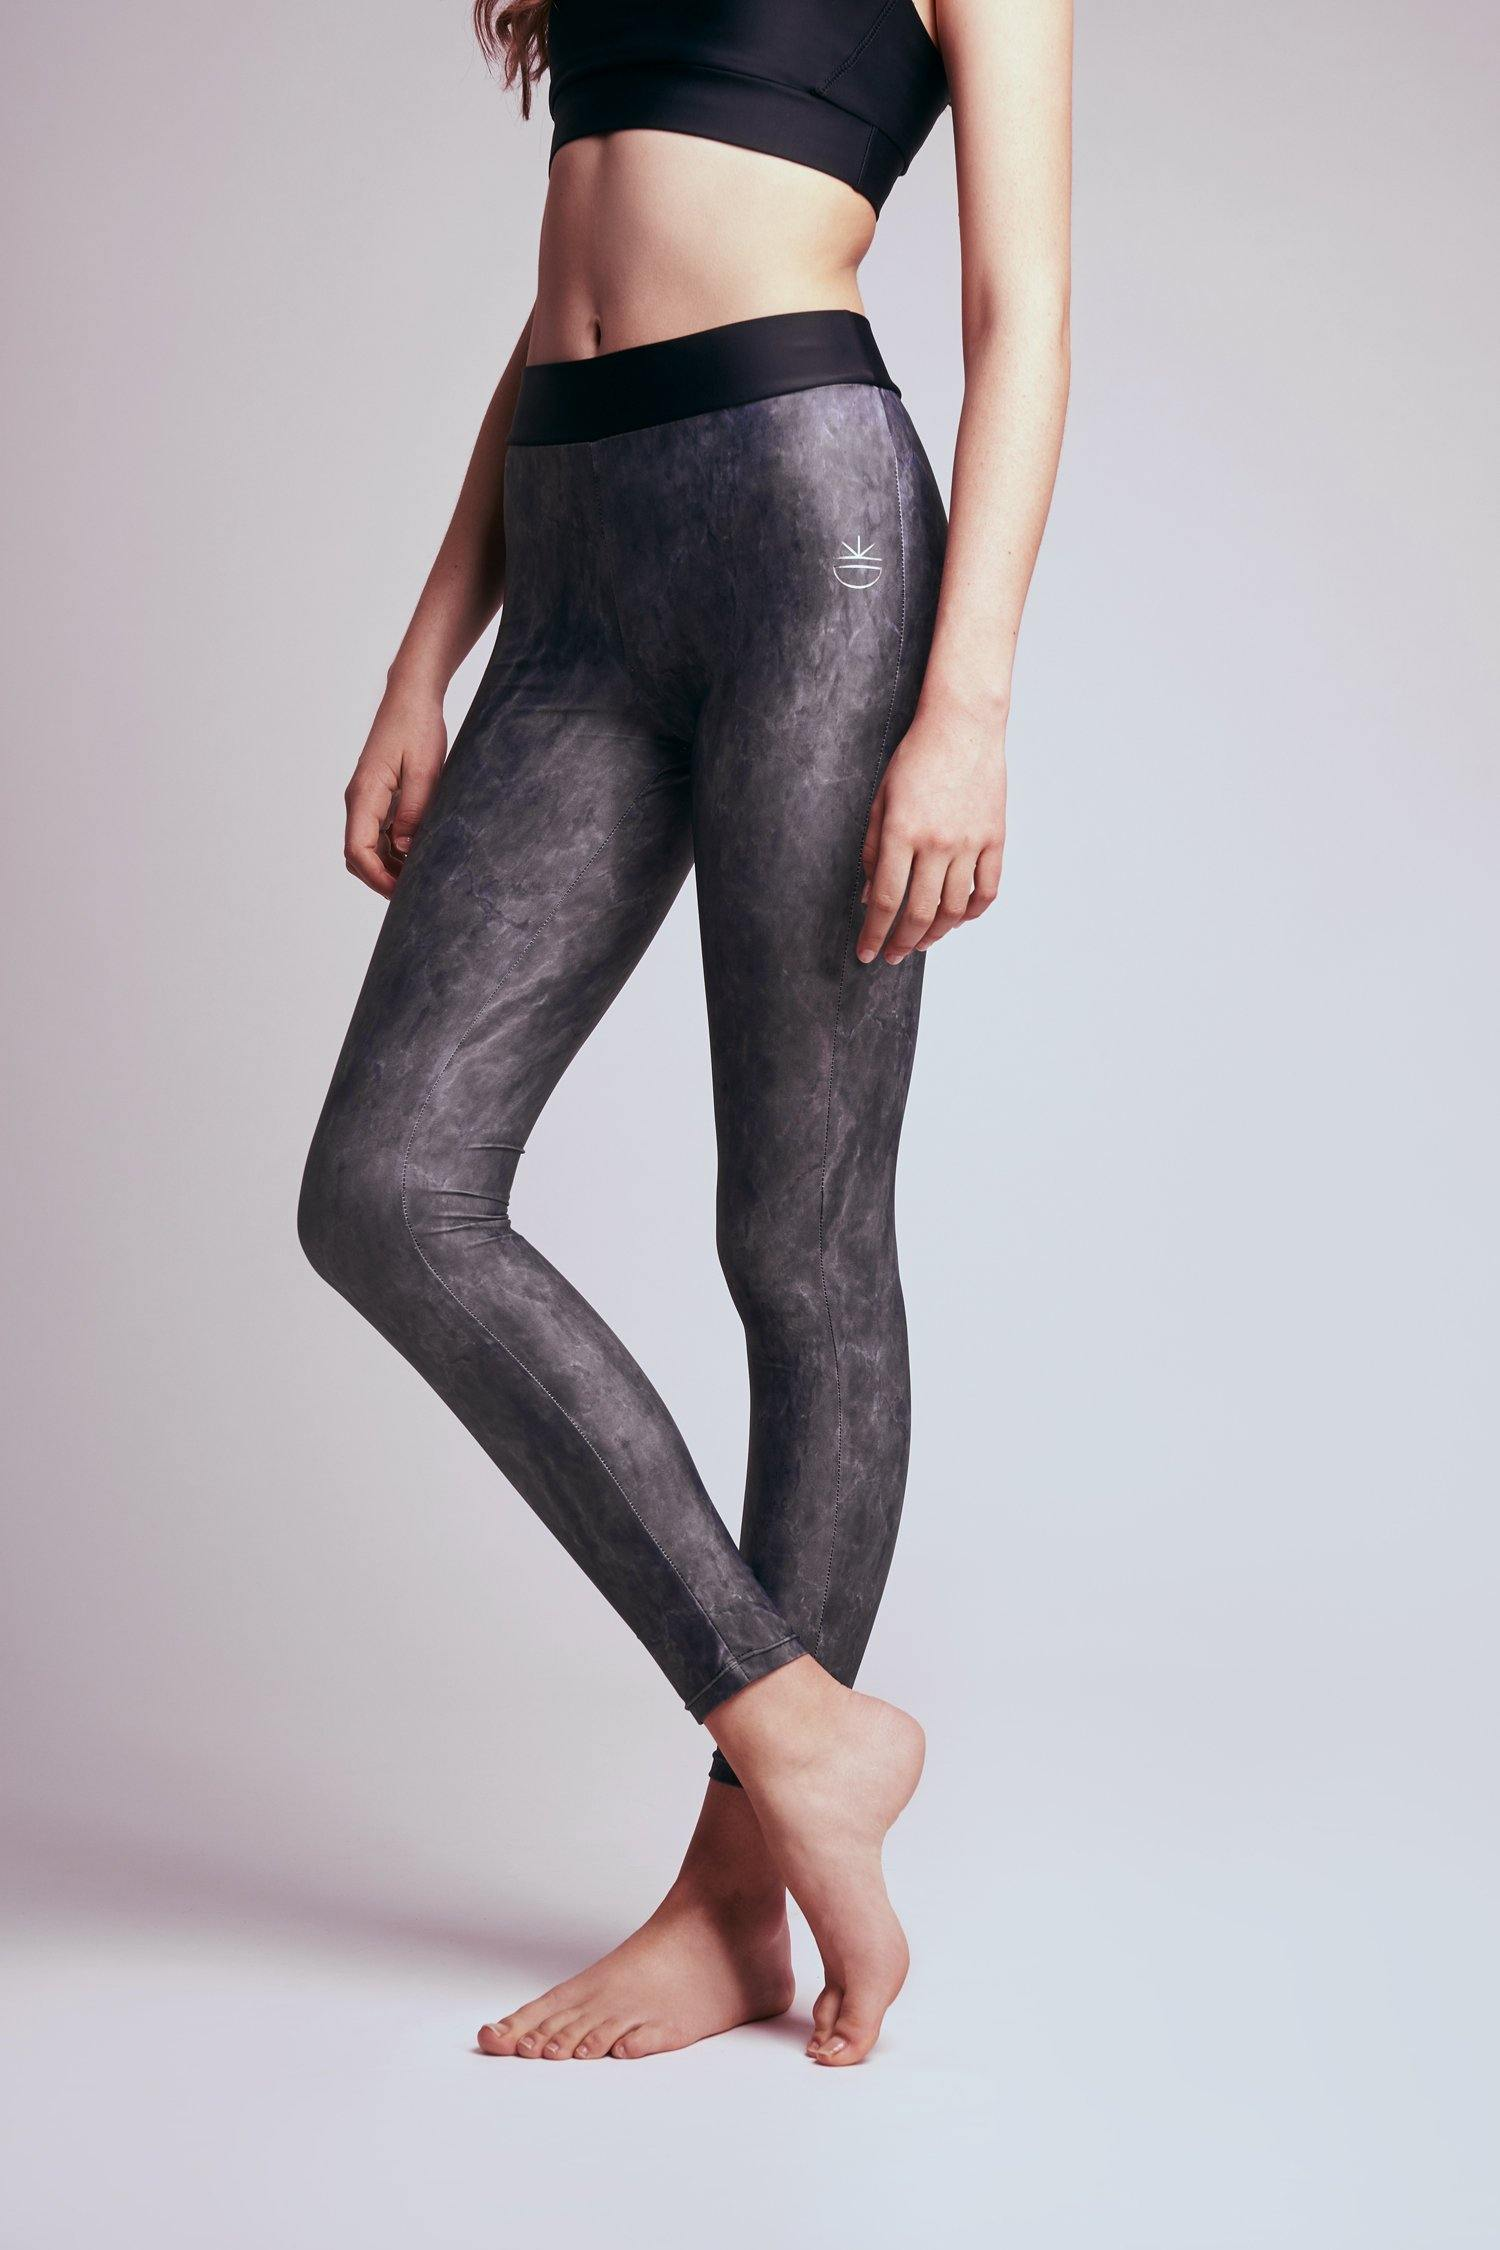 Elevation Leggings